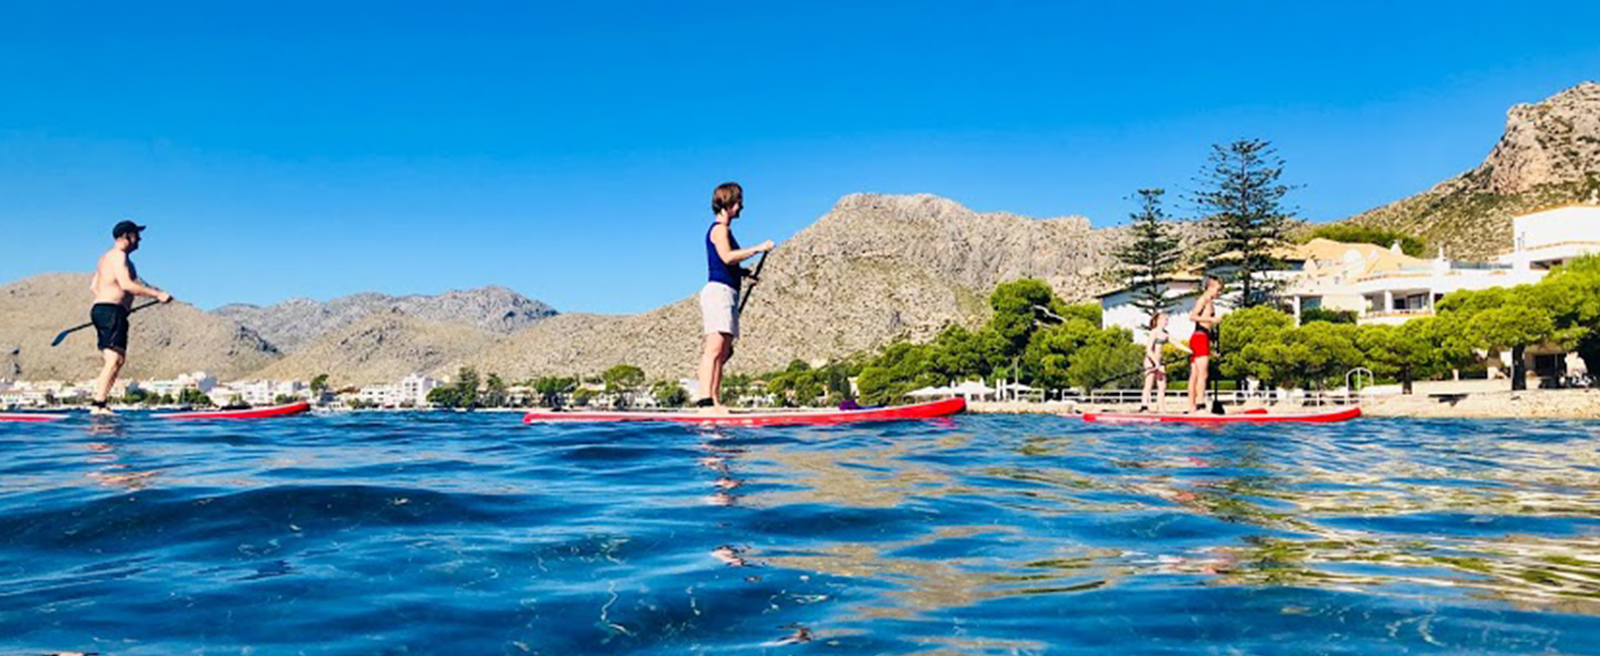 Paddle Board Taster Sessions with The Mallorca SUP Company